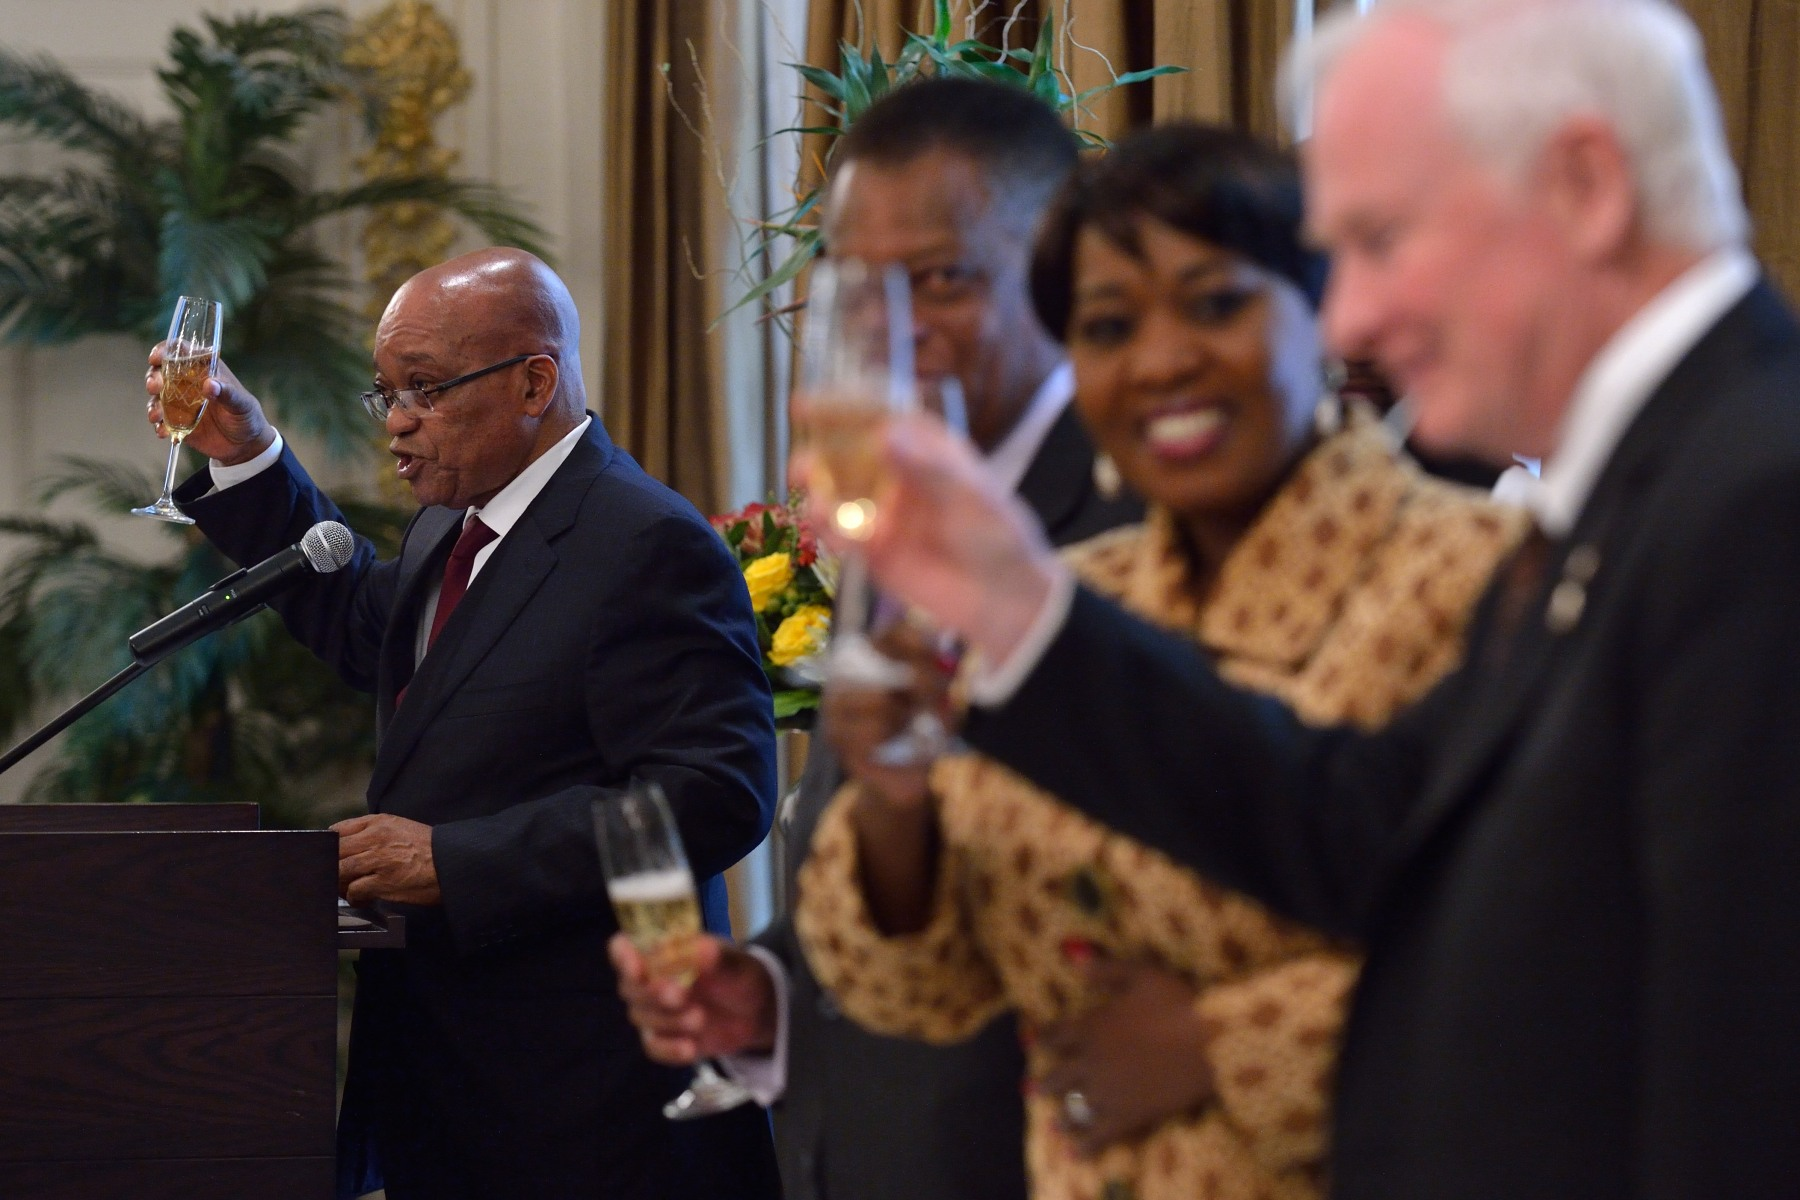 On the occasion of Their Excellencies' visit to the country, the President of the Republic of South Africa hosted a State luncheon. The Governor General and the President both delivered remarks.